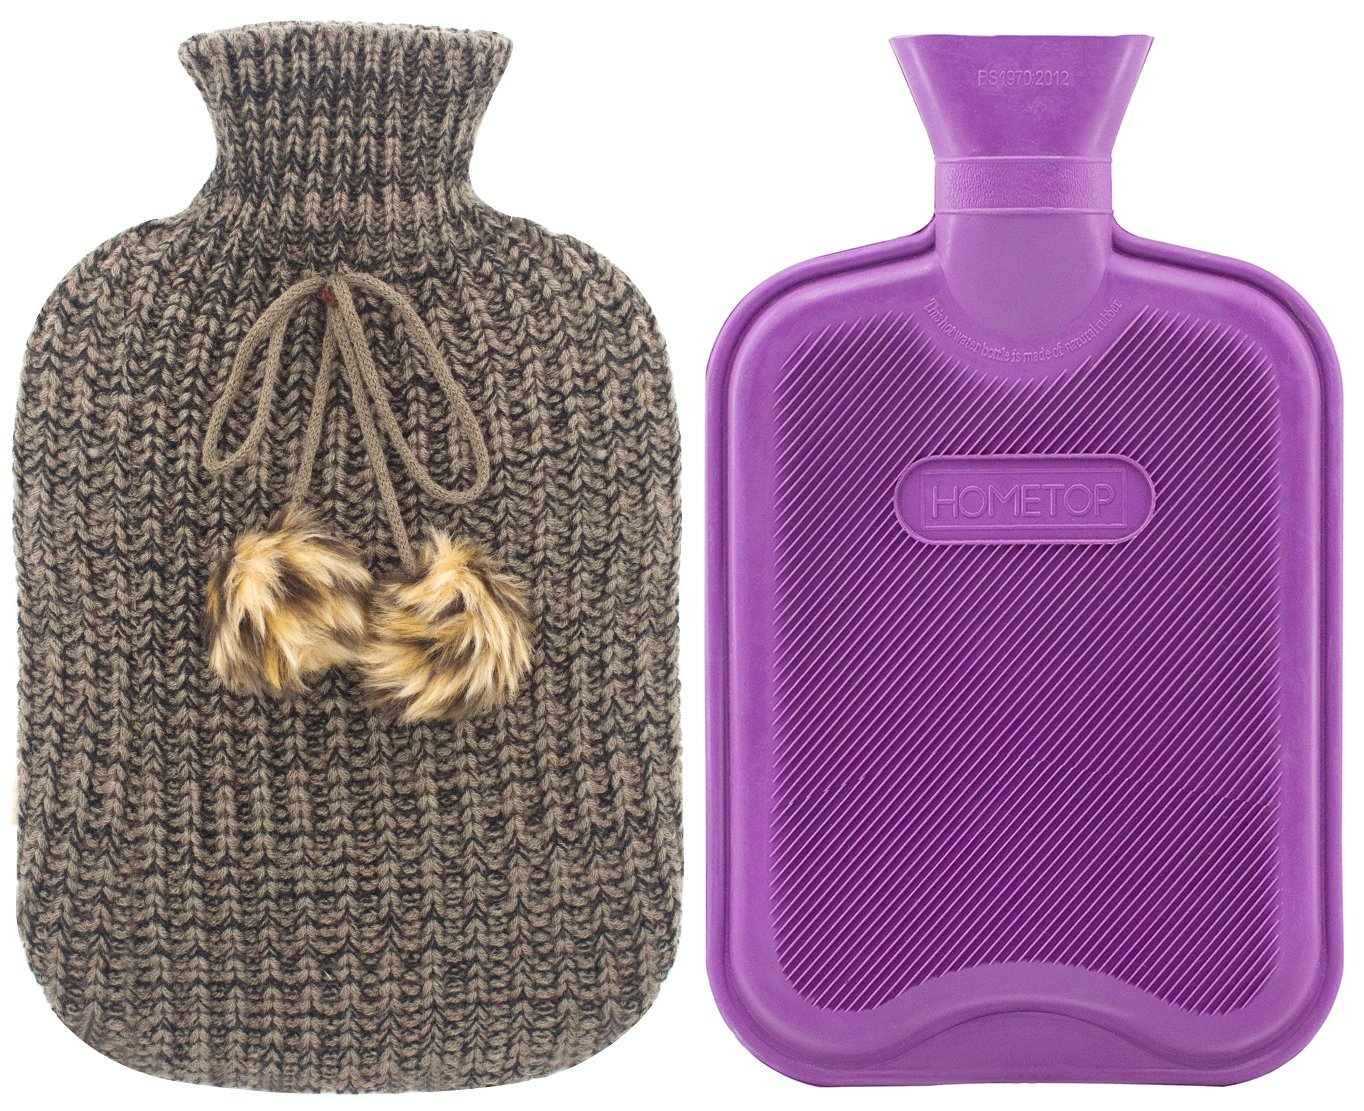 Premium Classic Rubber Hot Water Bottle and Blending Knit Cover with Pom Pom Decor (Gray)